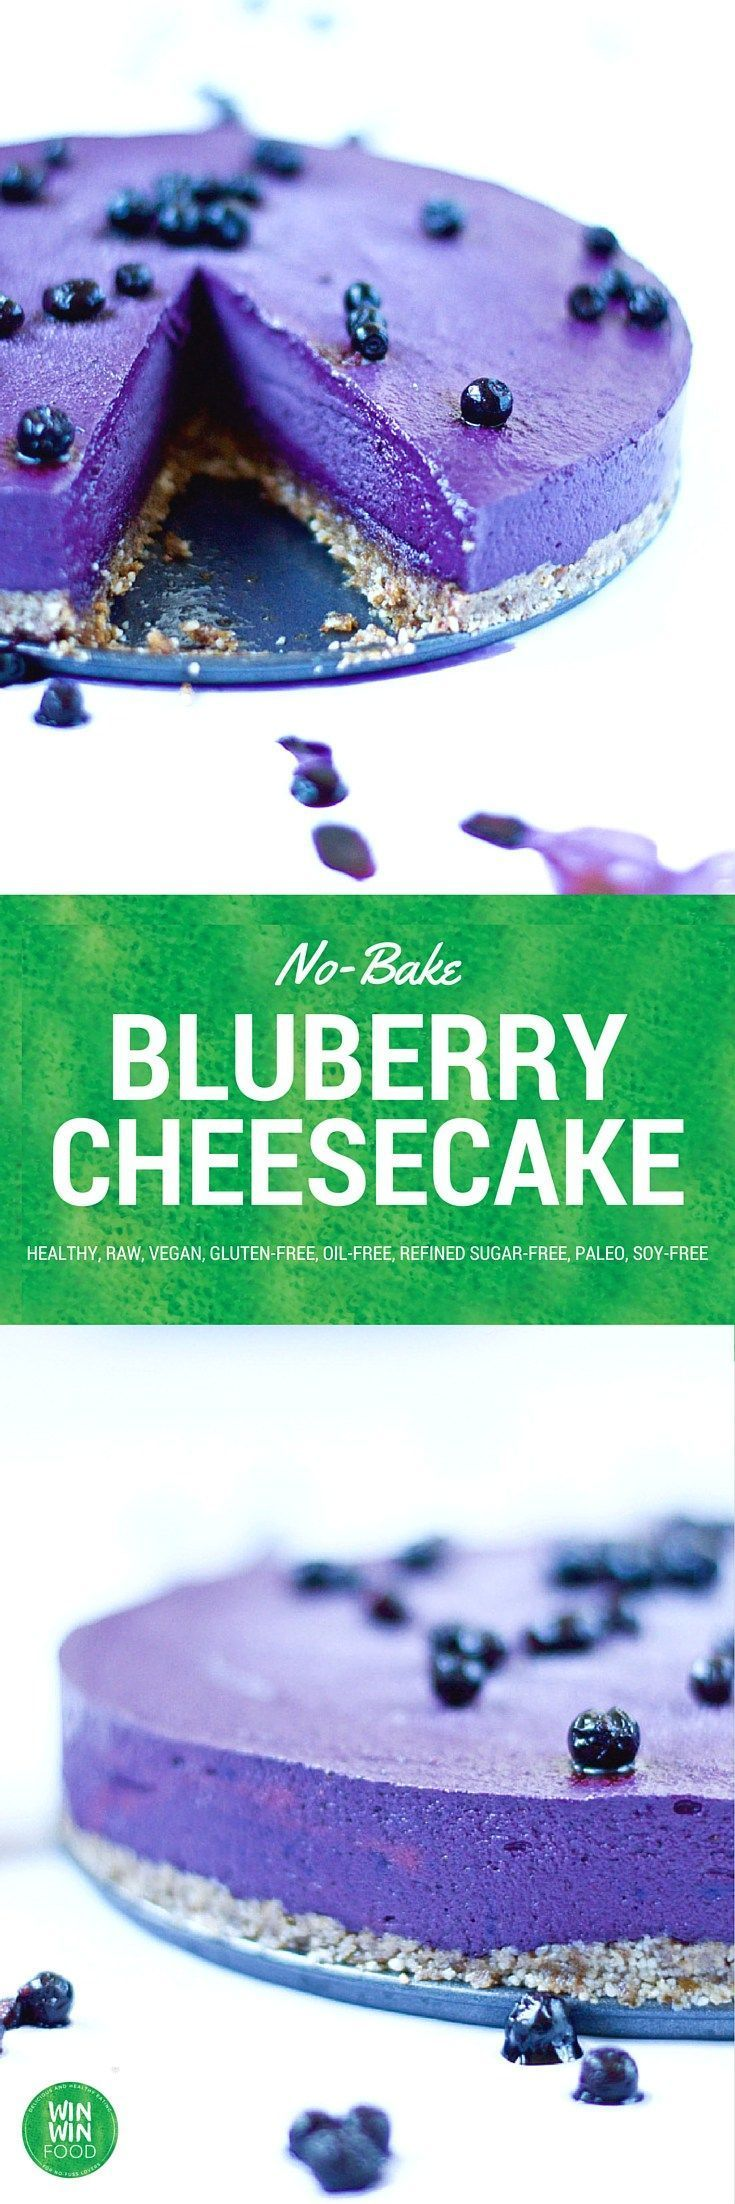 No-Bake Blueberry Cheesecake | WIN-WINFOOD.com #healthy #raw #vegan